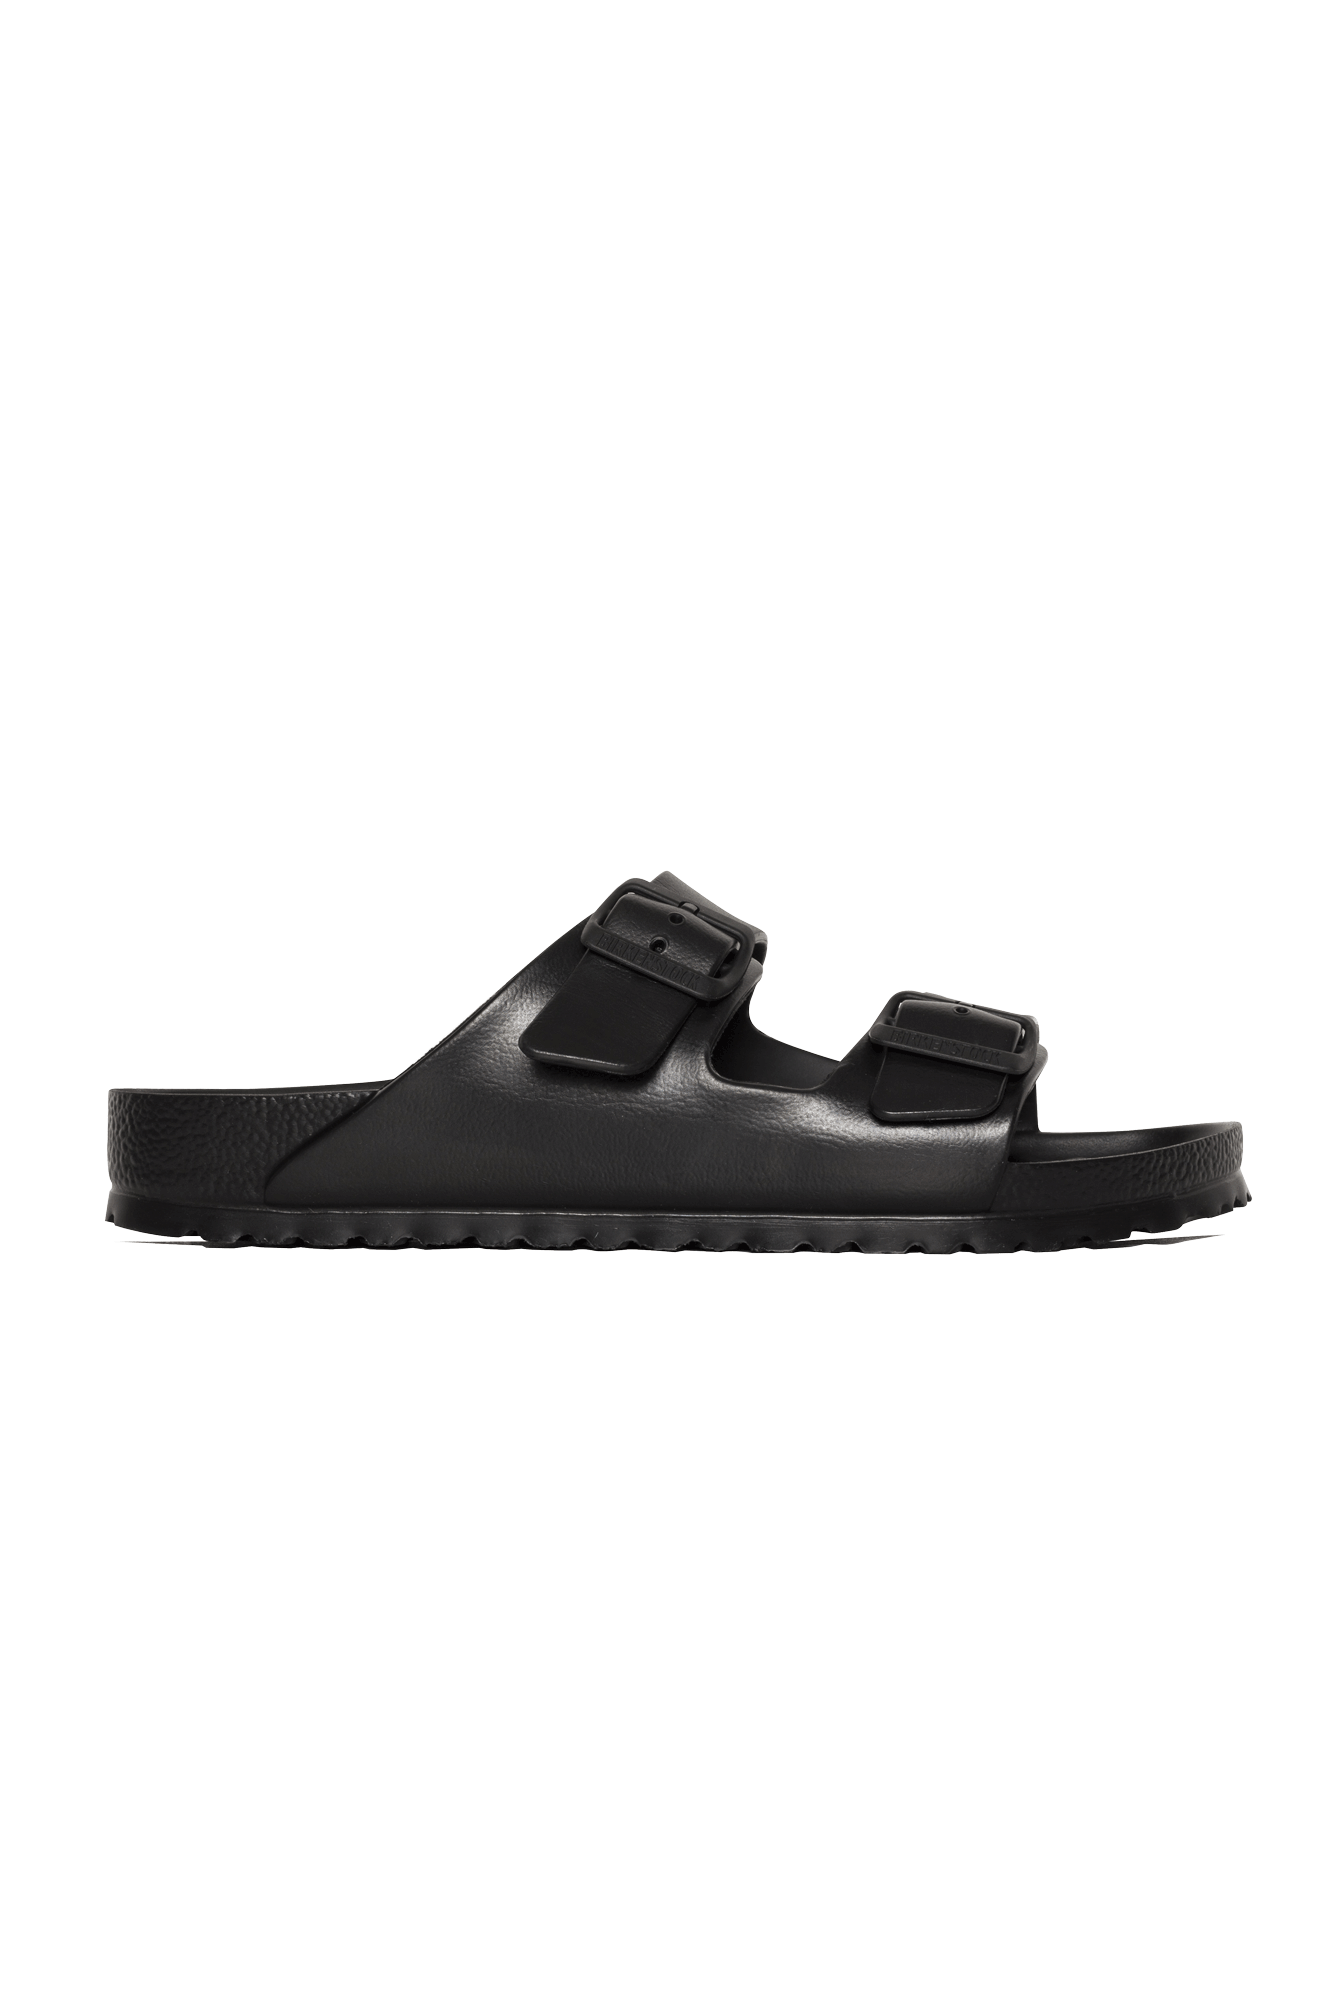 Birkenstock Sandals & Slides Arizona EVA Black 129421#000#C0010#11 - One Block Down